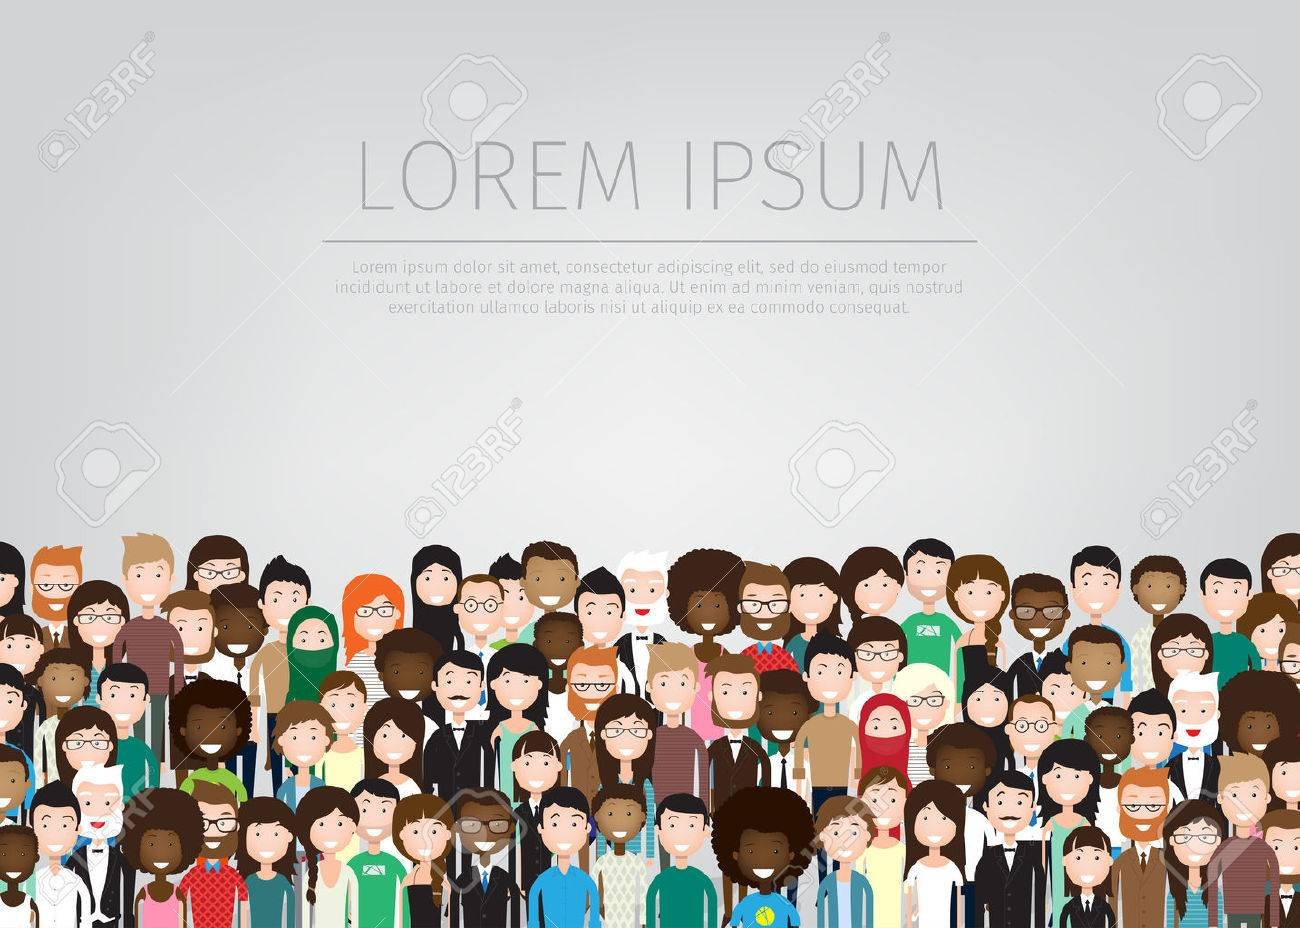 large group of different people background - 64171325